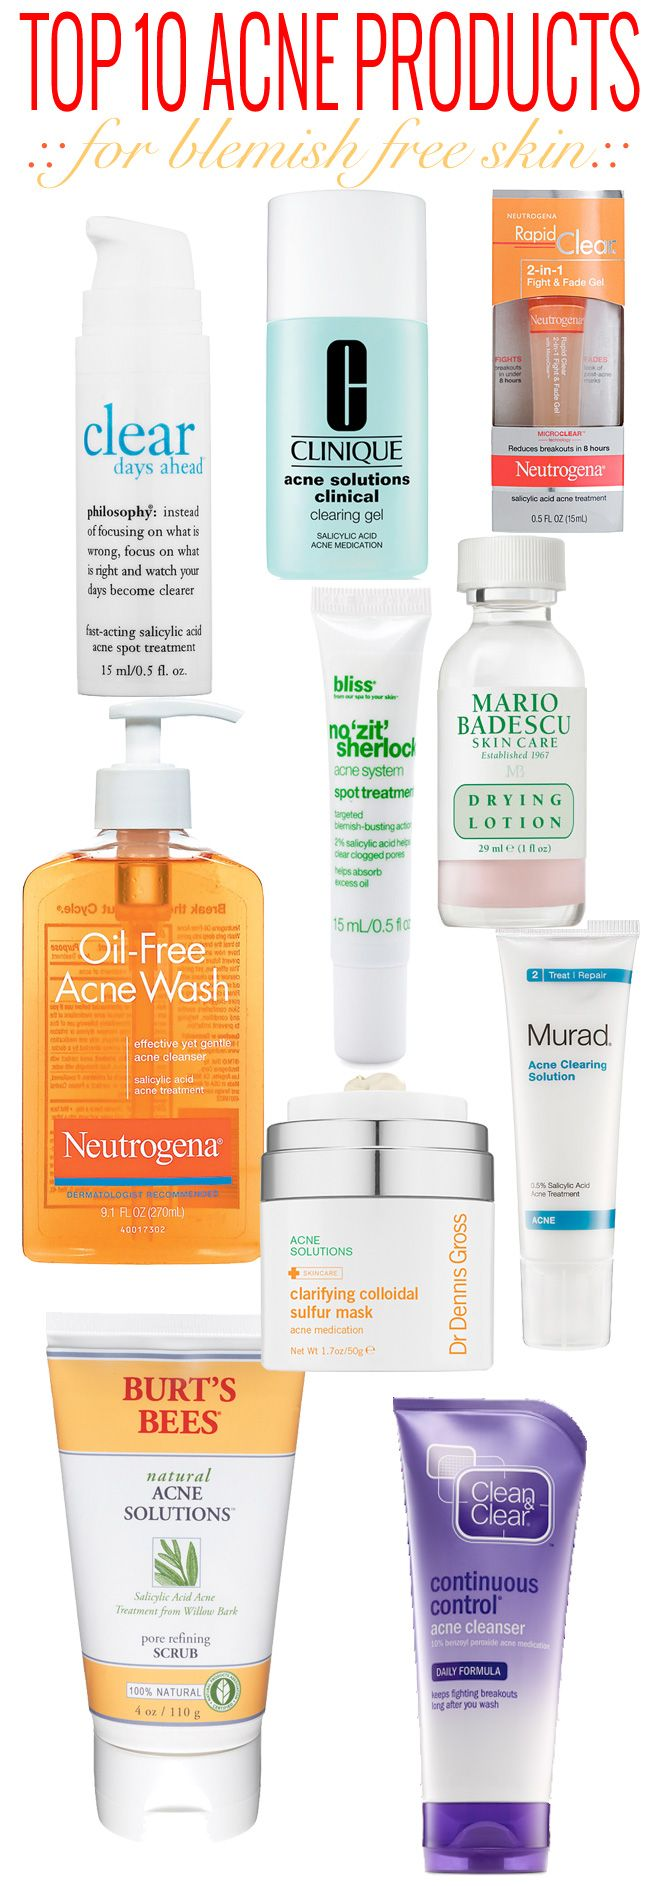 Top 10 Acne Products. Best acne products, Acne skin